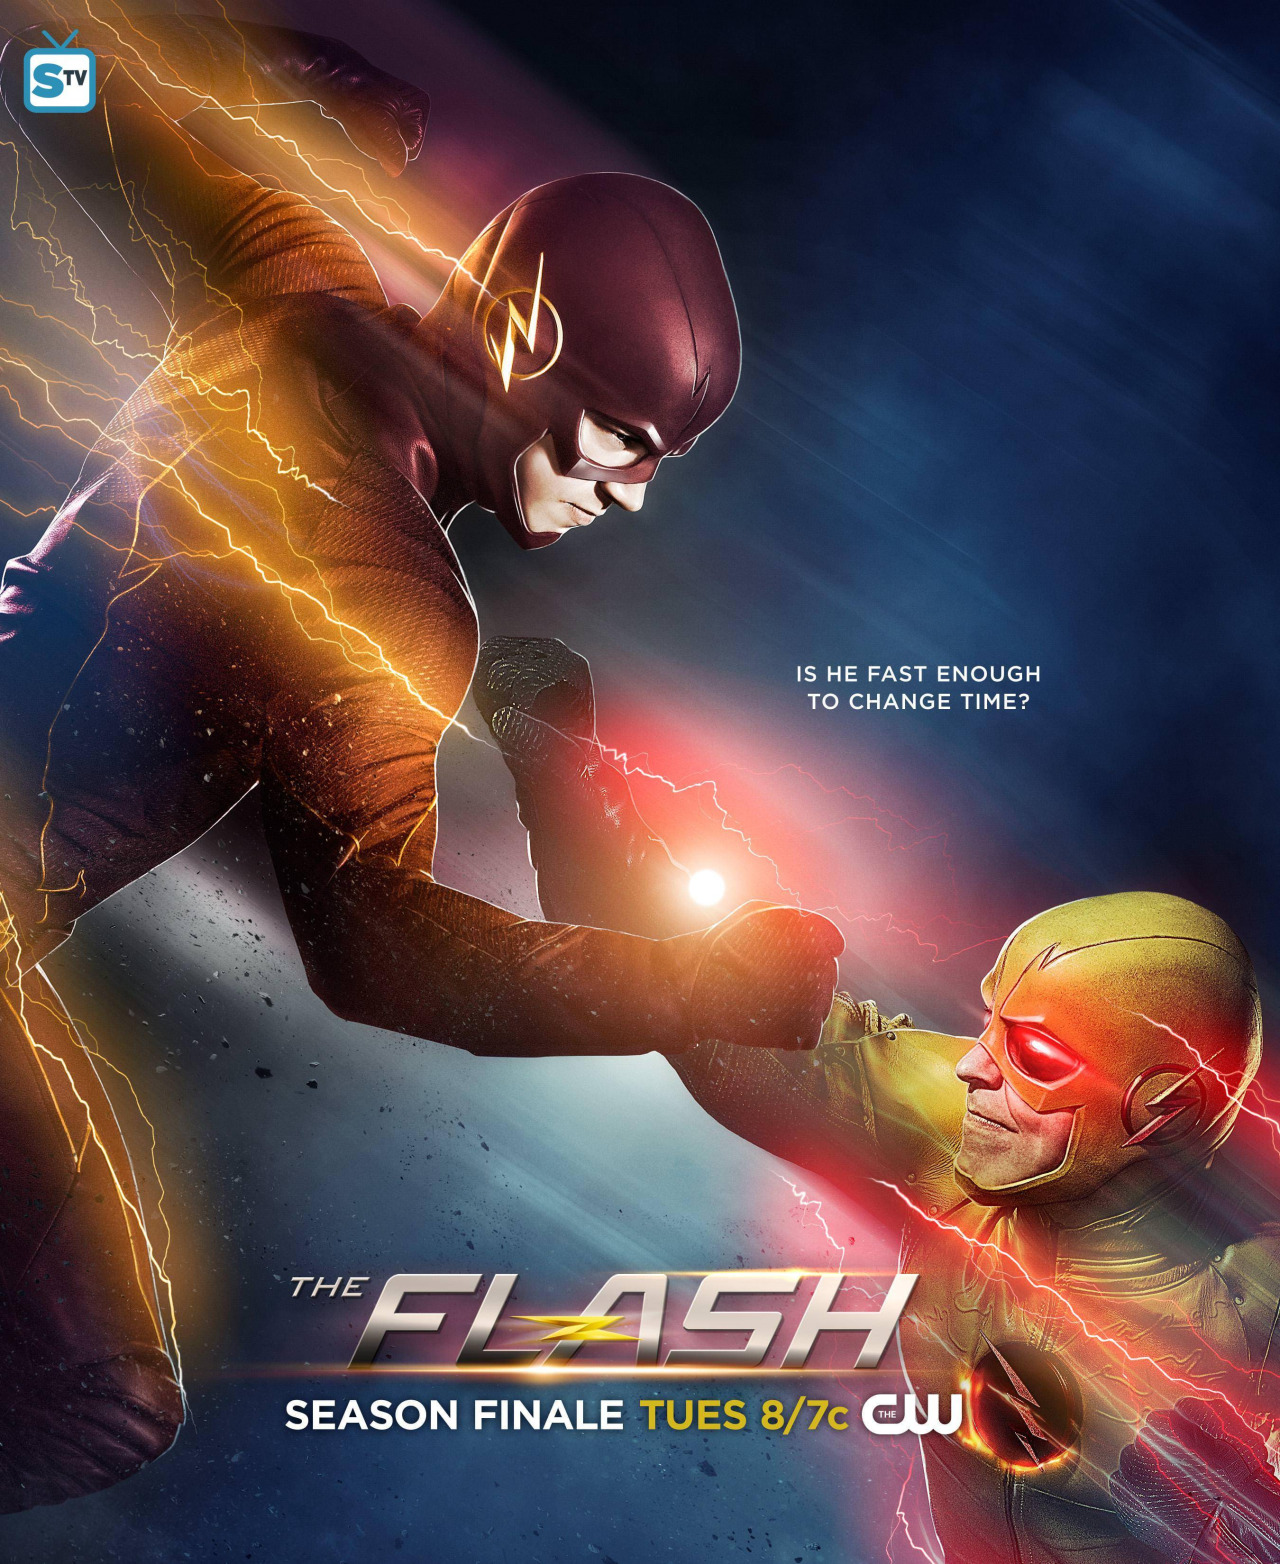 Image result for the flash season 1 poster